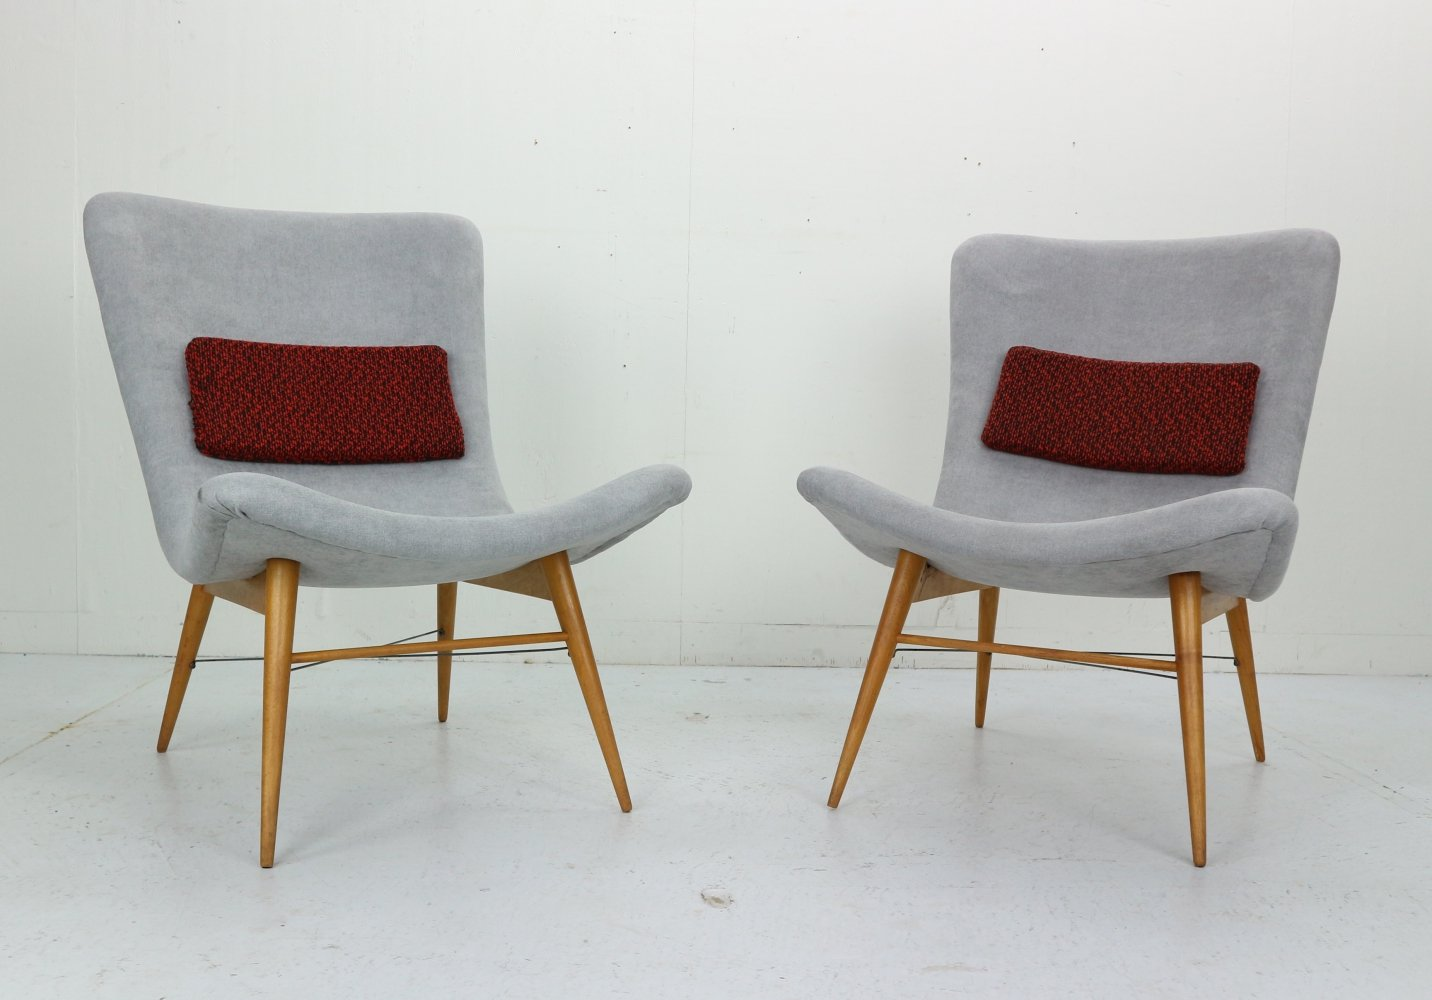 Set of 2 Lounge Chairs by Miroslav Navratil, 1959